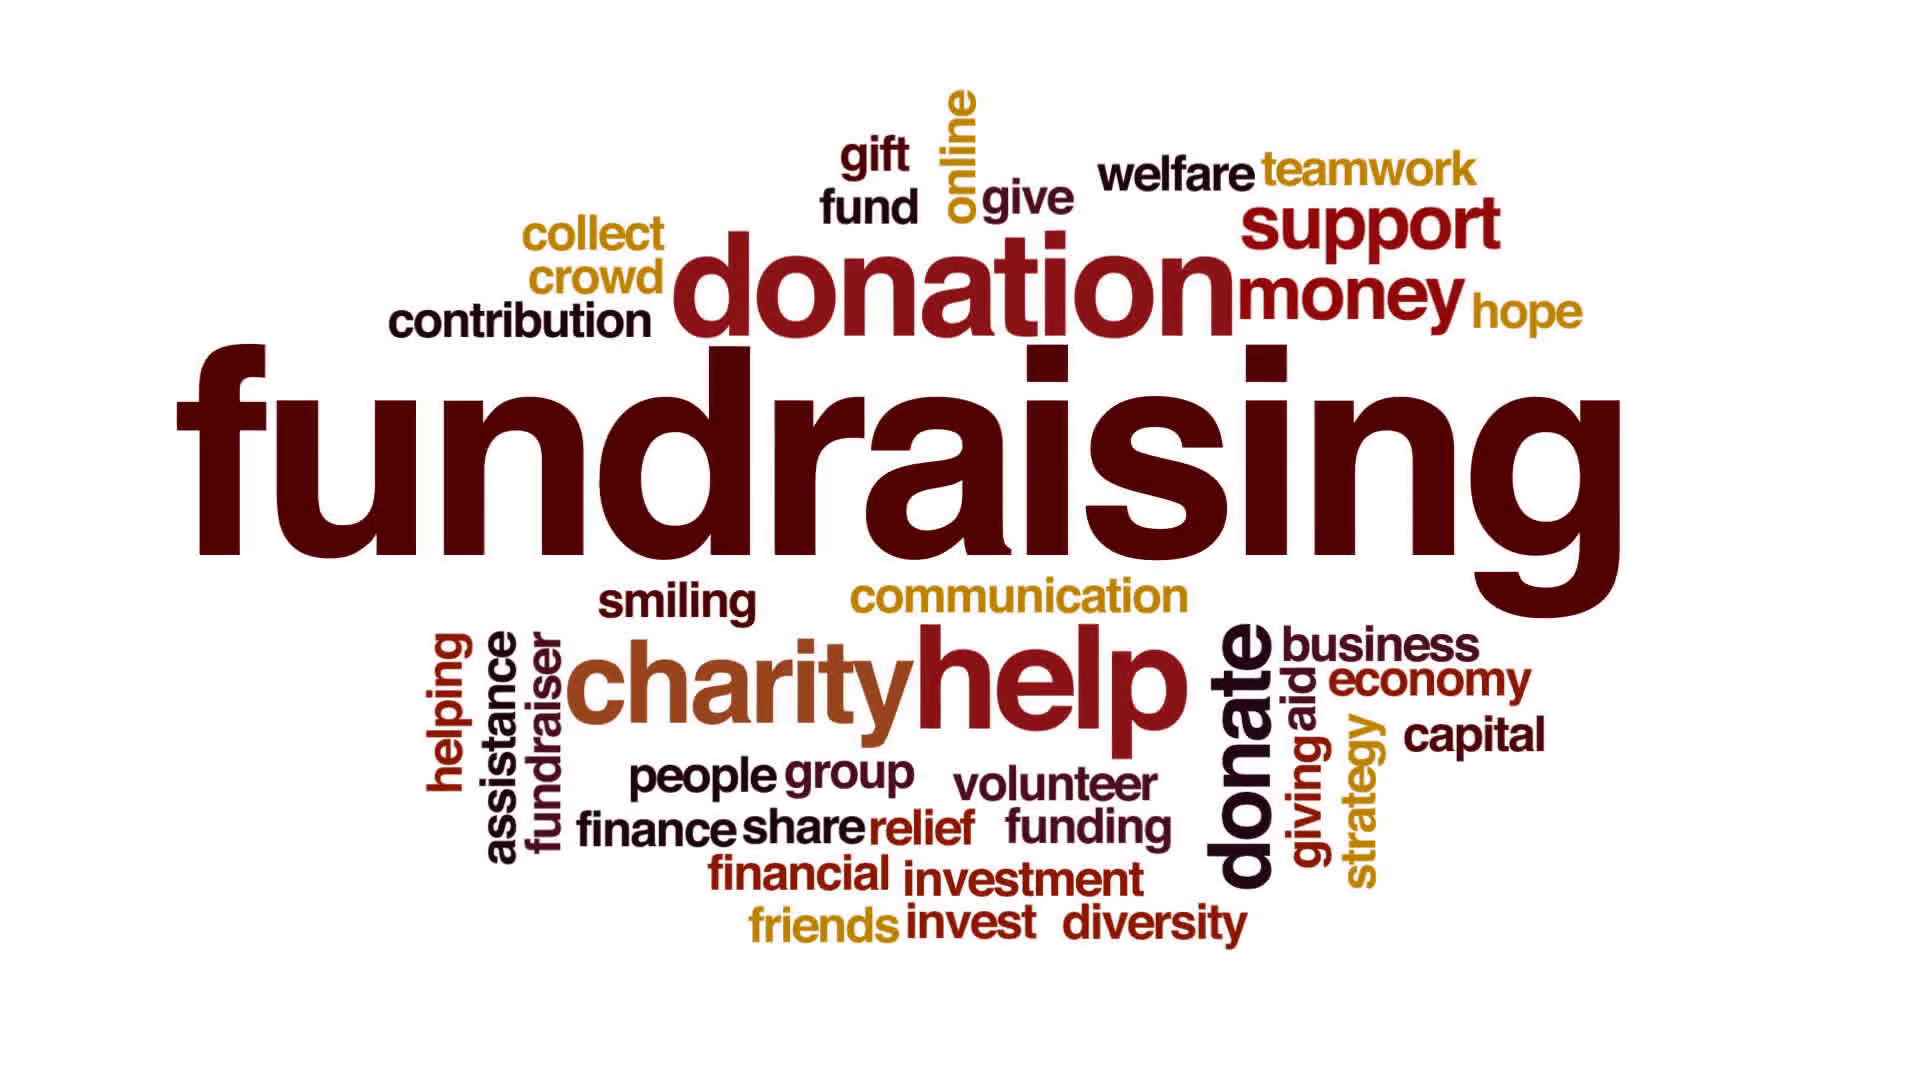 Fundraising Coordinator - Click on the image to view our Fundraising Coordinator Role description